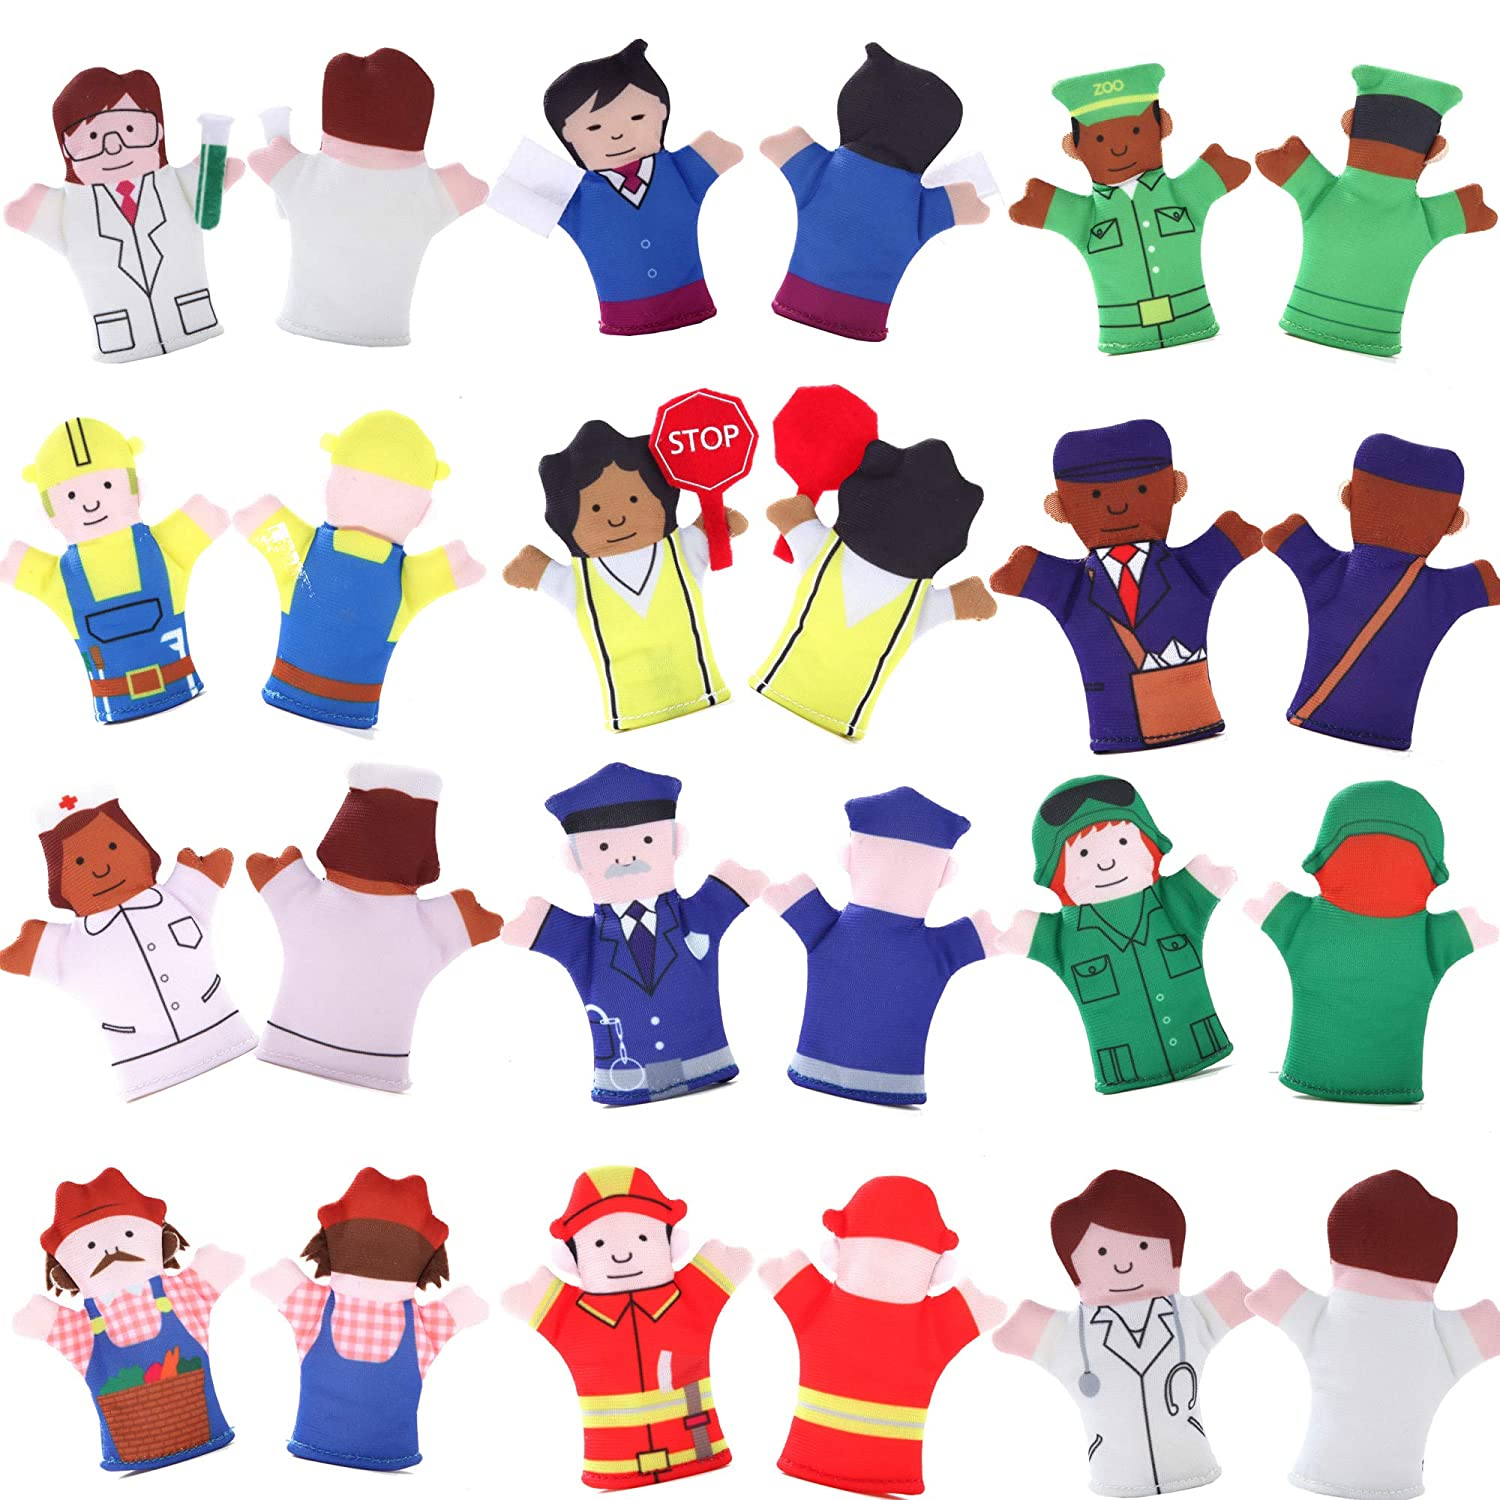 For Families Free Bonus E-Book Teach and Learn with a Variety of Neighborhood People Characters Kindergarten Play and ESL Limited Edition Happy Helpers Finger Puppets 12-Piece Set Children